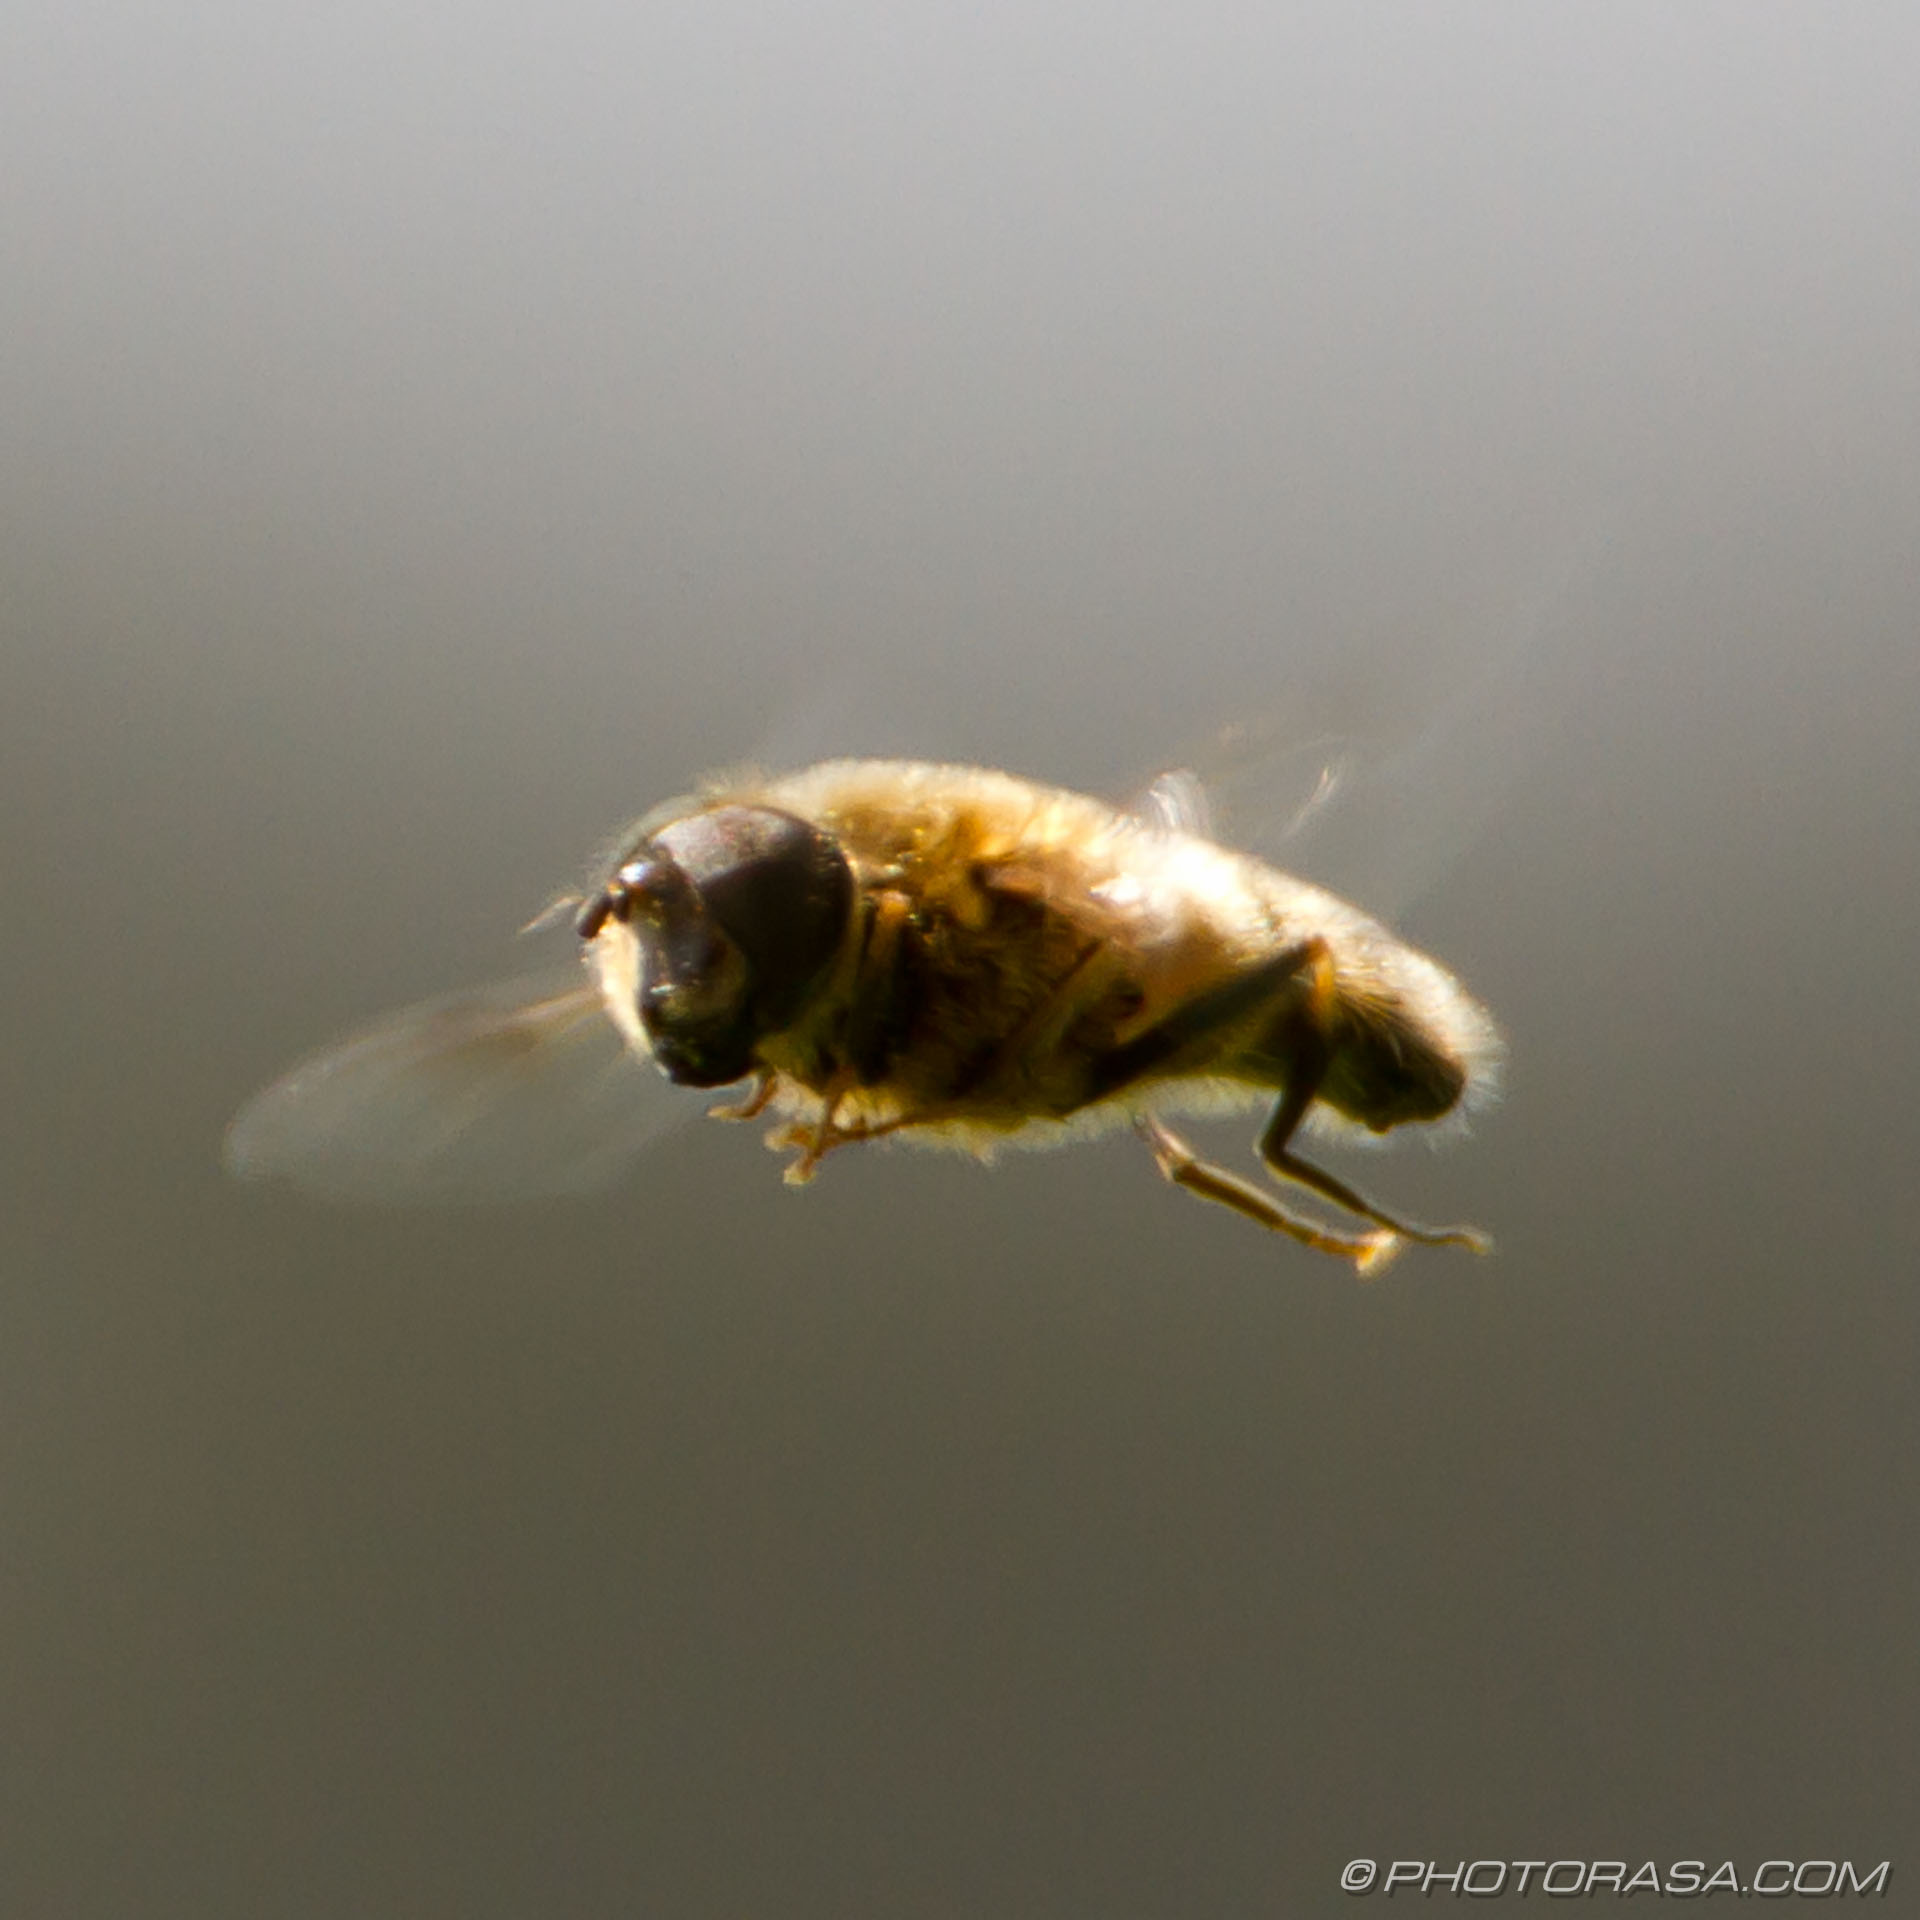 https://photorasa.com/hoverflies/hover-fly-in-motion/